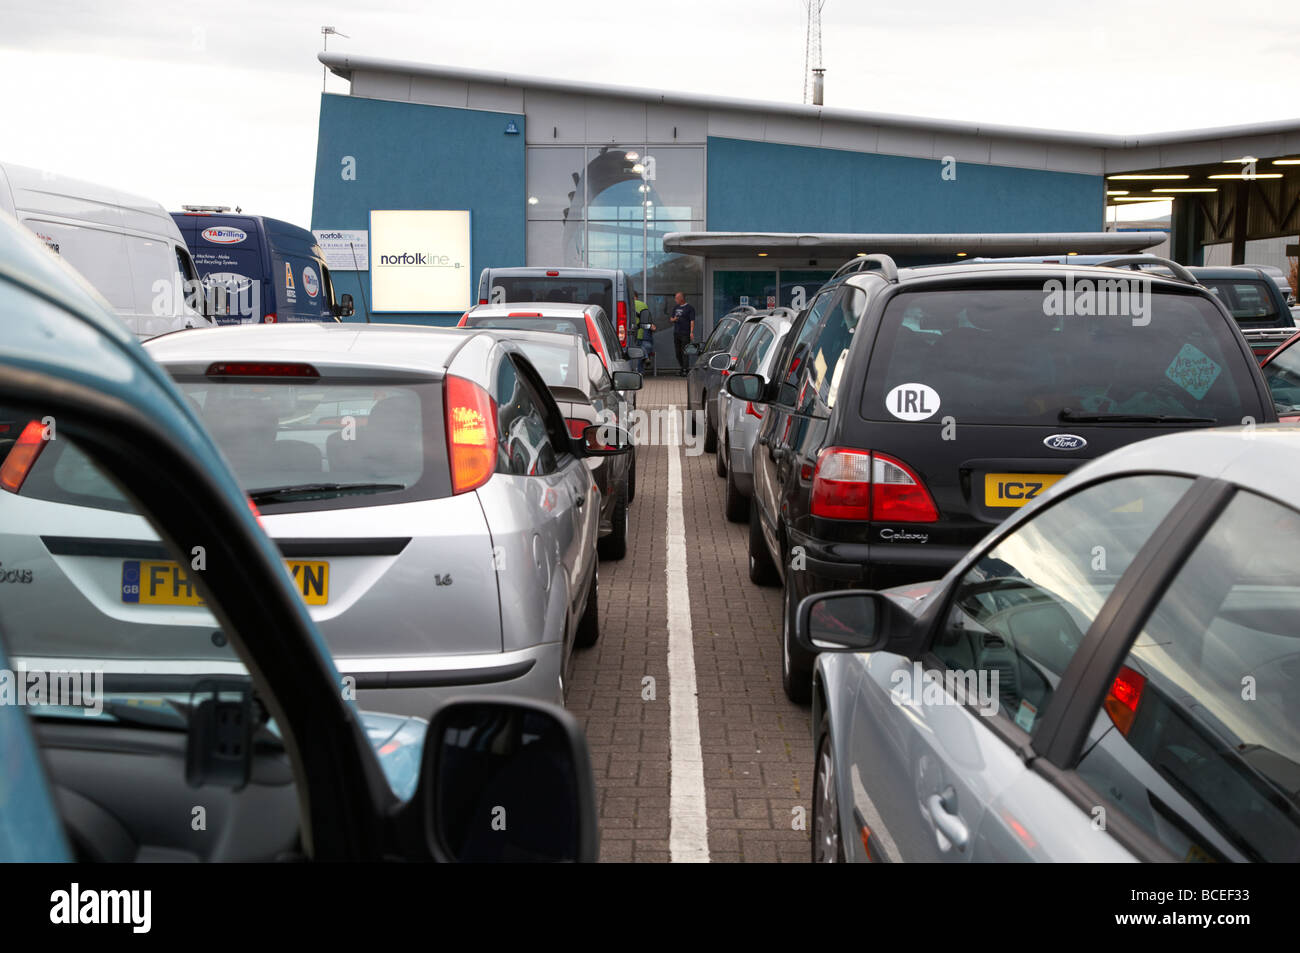 cars and vans queuing in line to board the norfolkline belfast to liverpool ferry at the terminal in belfast harbour - Stock Image